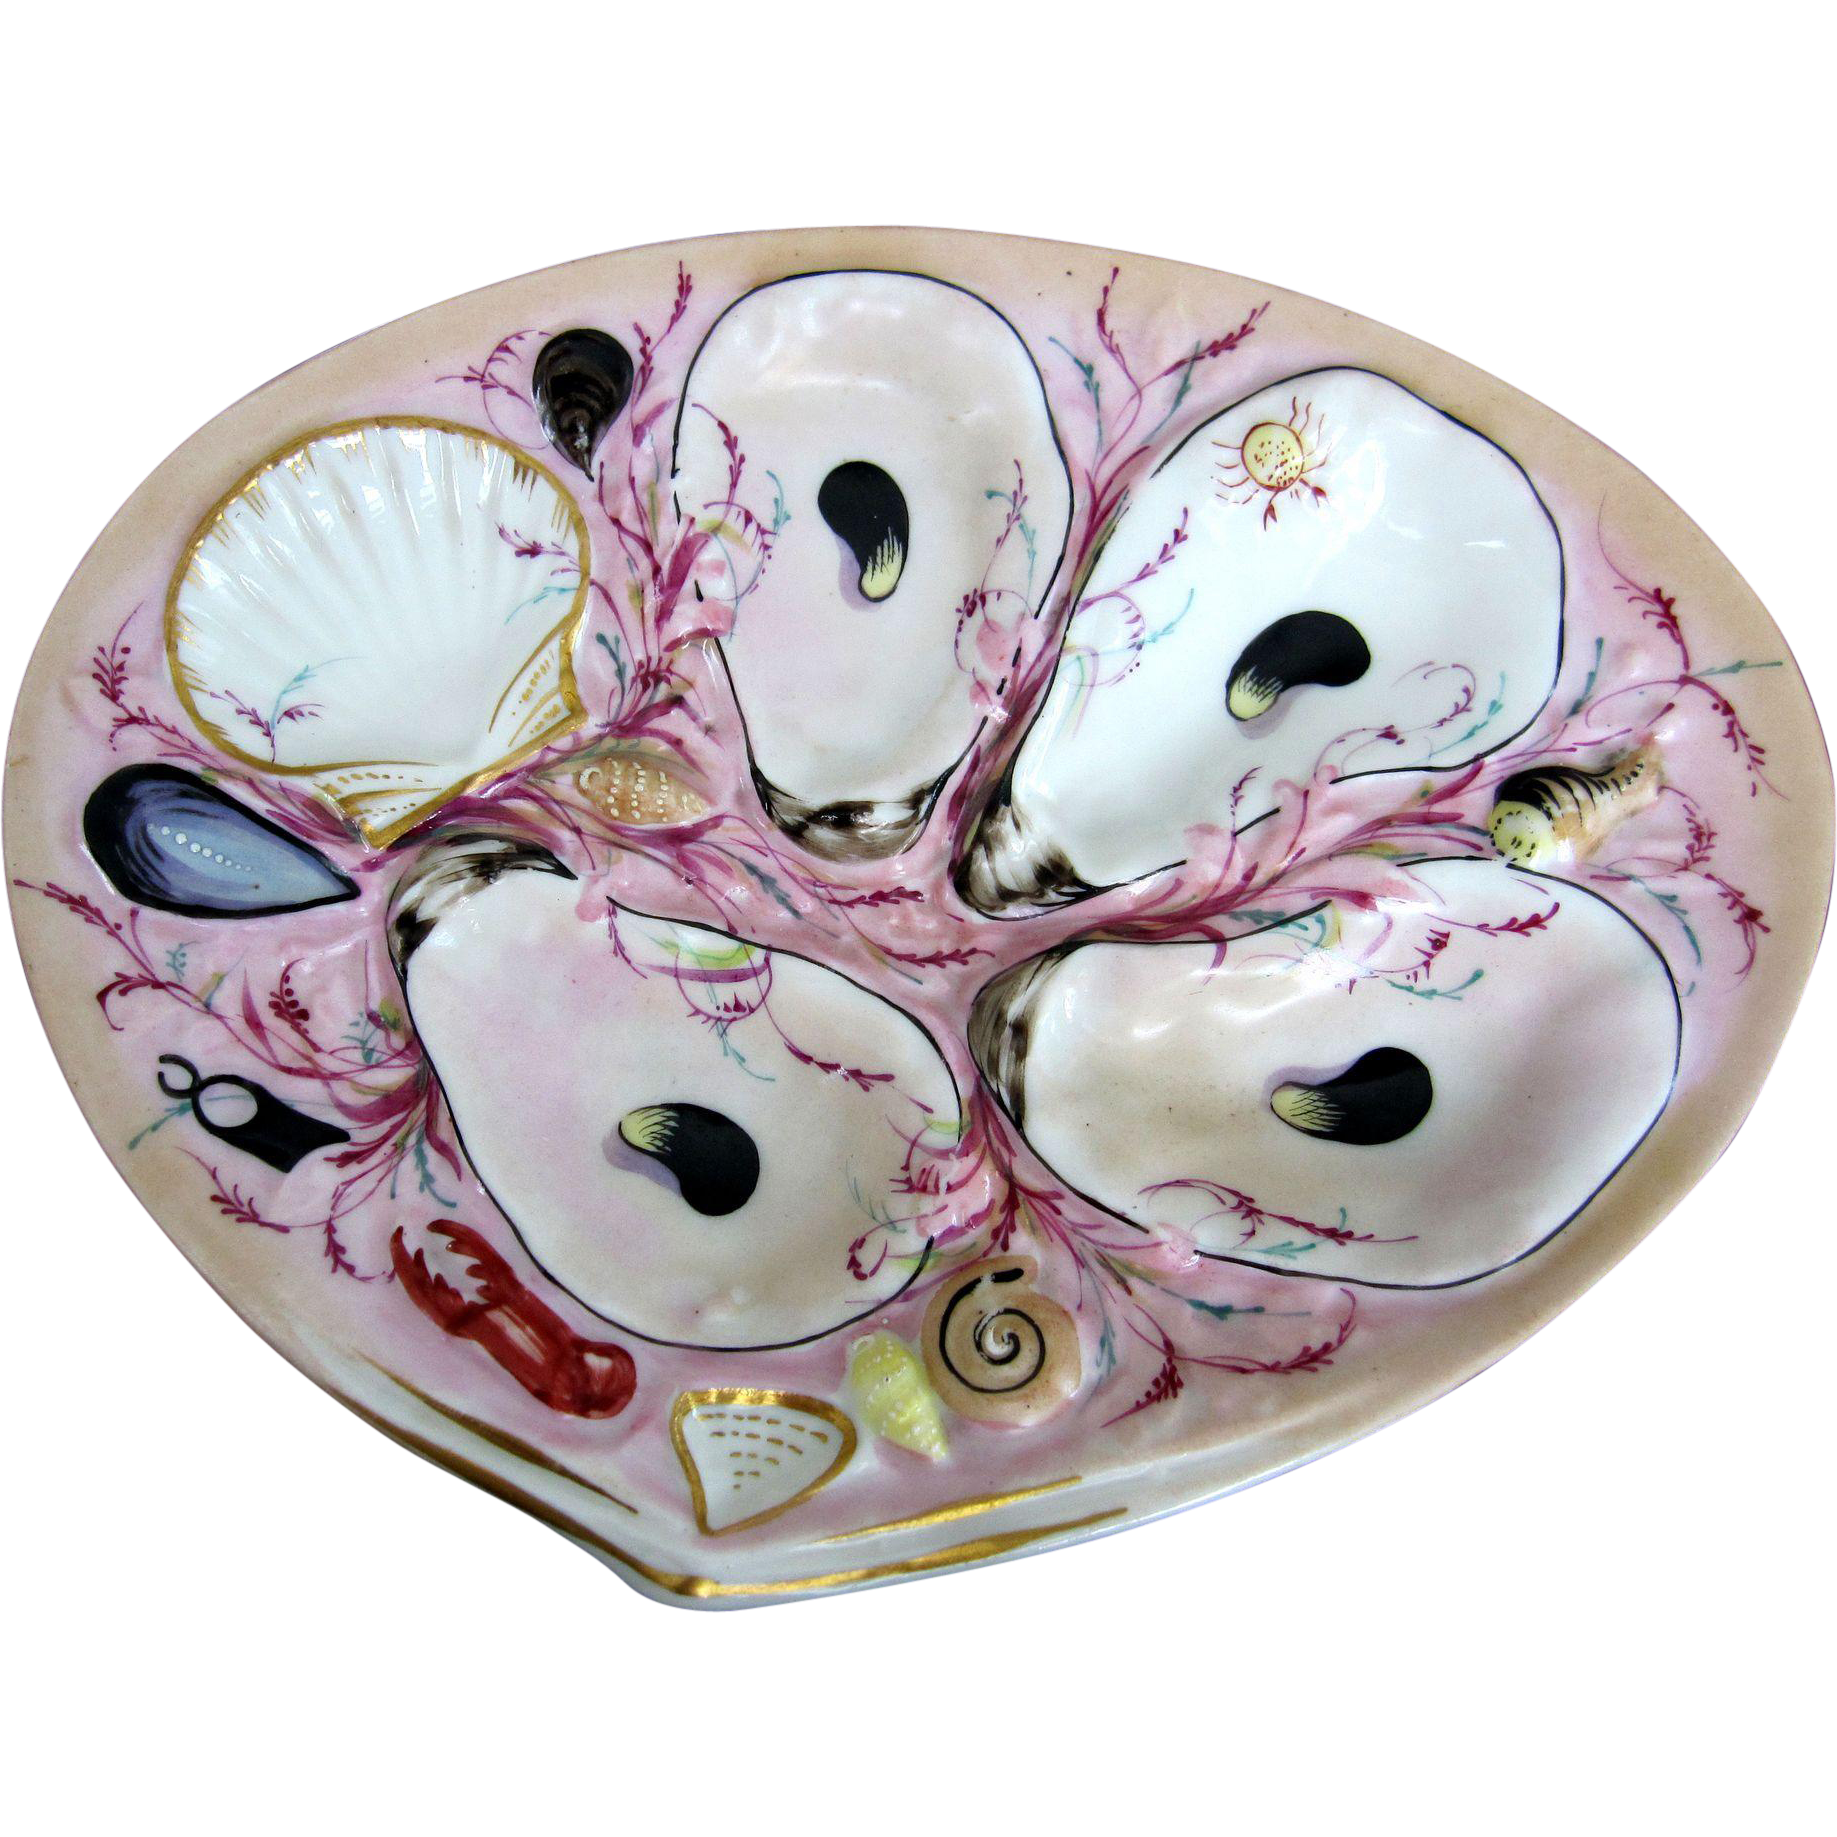 Captivating UPW Antique Oyster Plate! ~ Union Porcelain Works